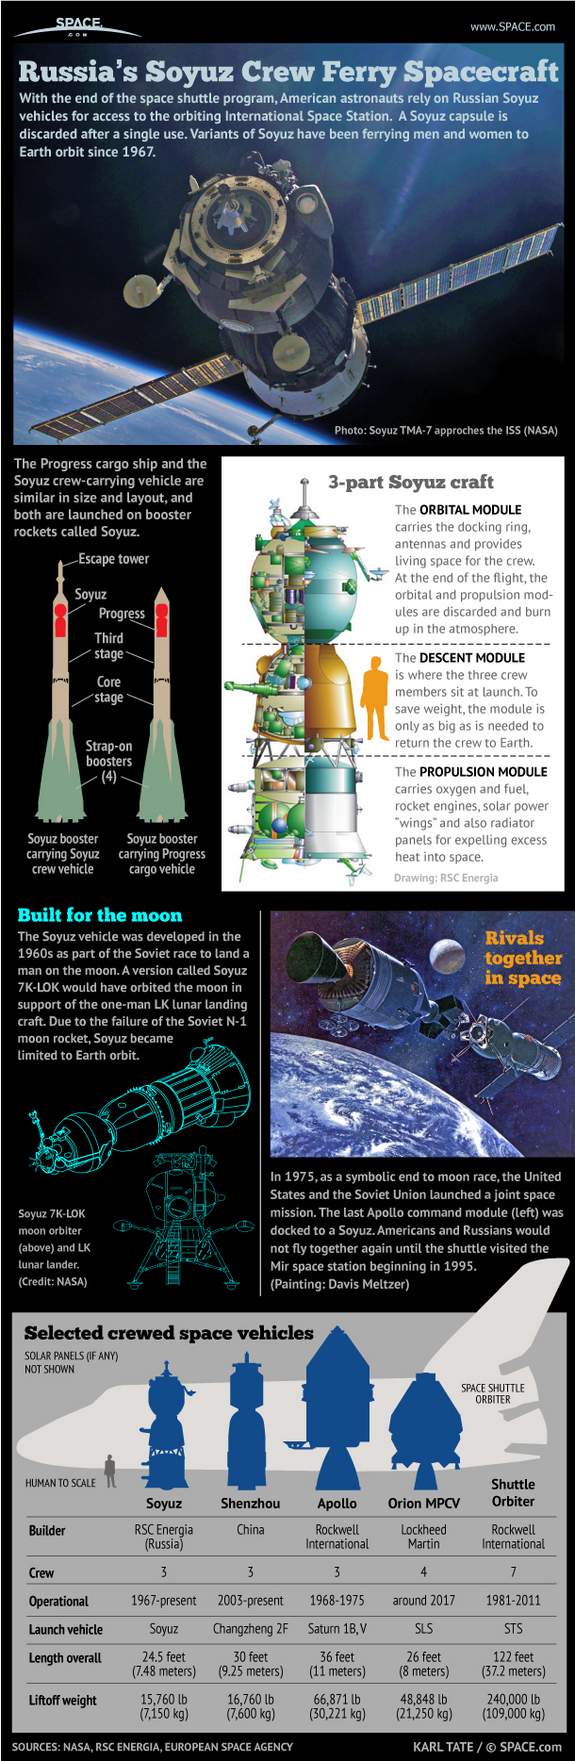 "The workhorse Soyuz spacecraft have been flying for nearly 45 years. <a href=""http://www.space.com/14456-russia-soyuz-space-capsule-infographic.html"">See how Russia's Soyuz spacecraft work in this Space.com infographic</a>."